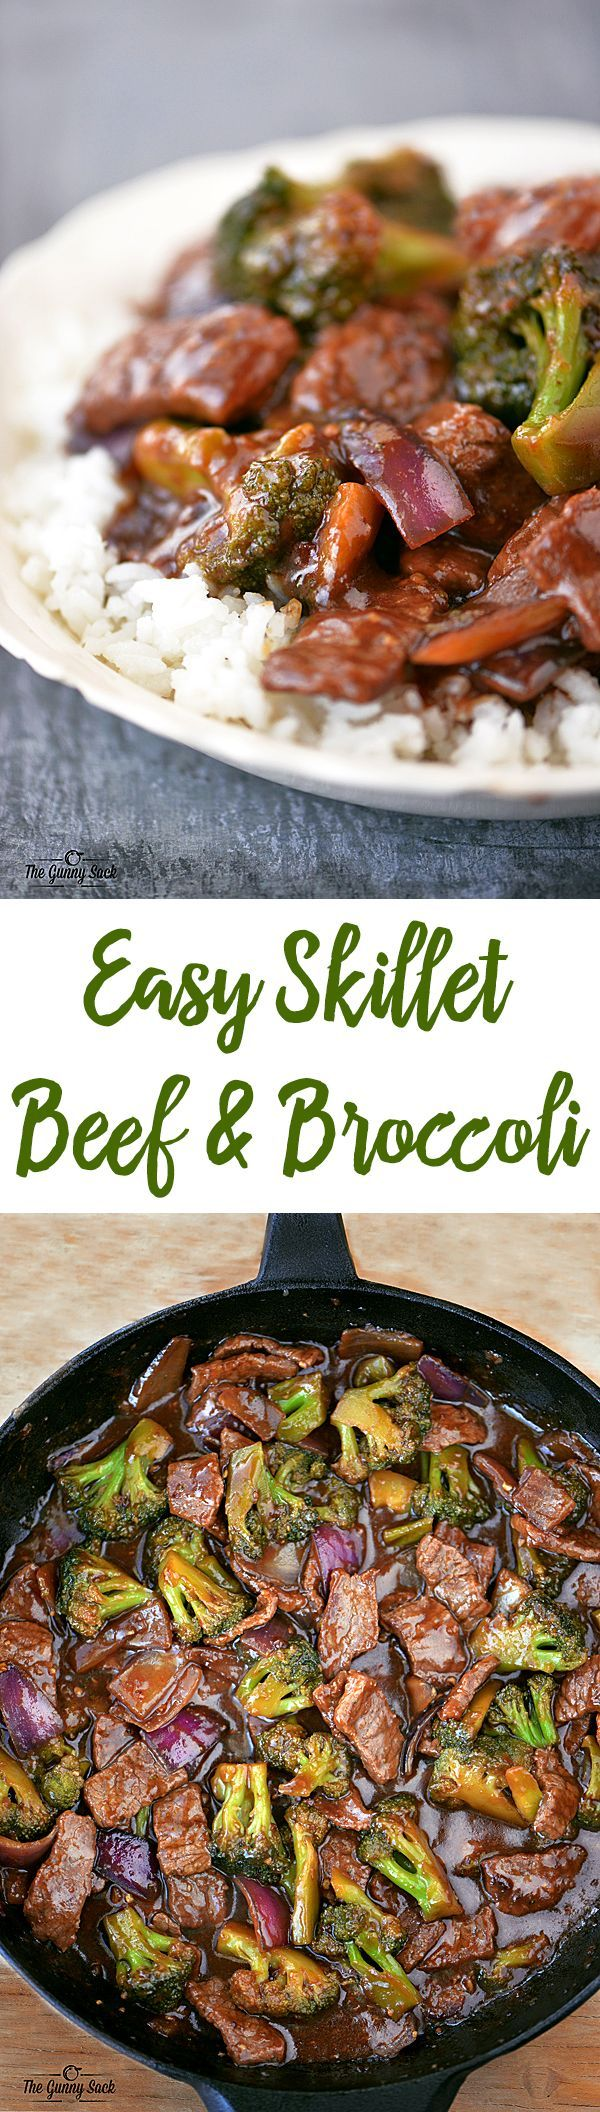 This Easy Skillet Beef and Broccoli recipe is better than take out and is ready…